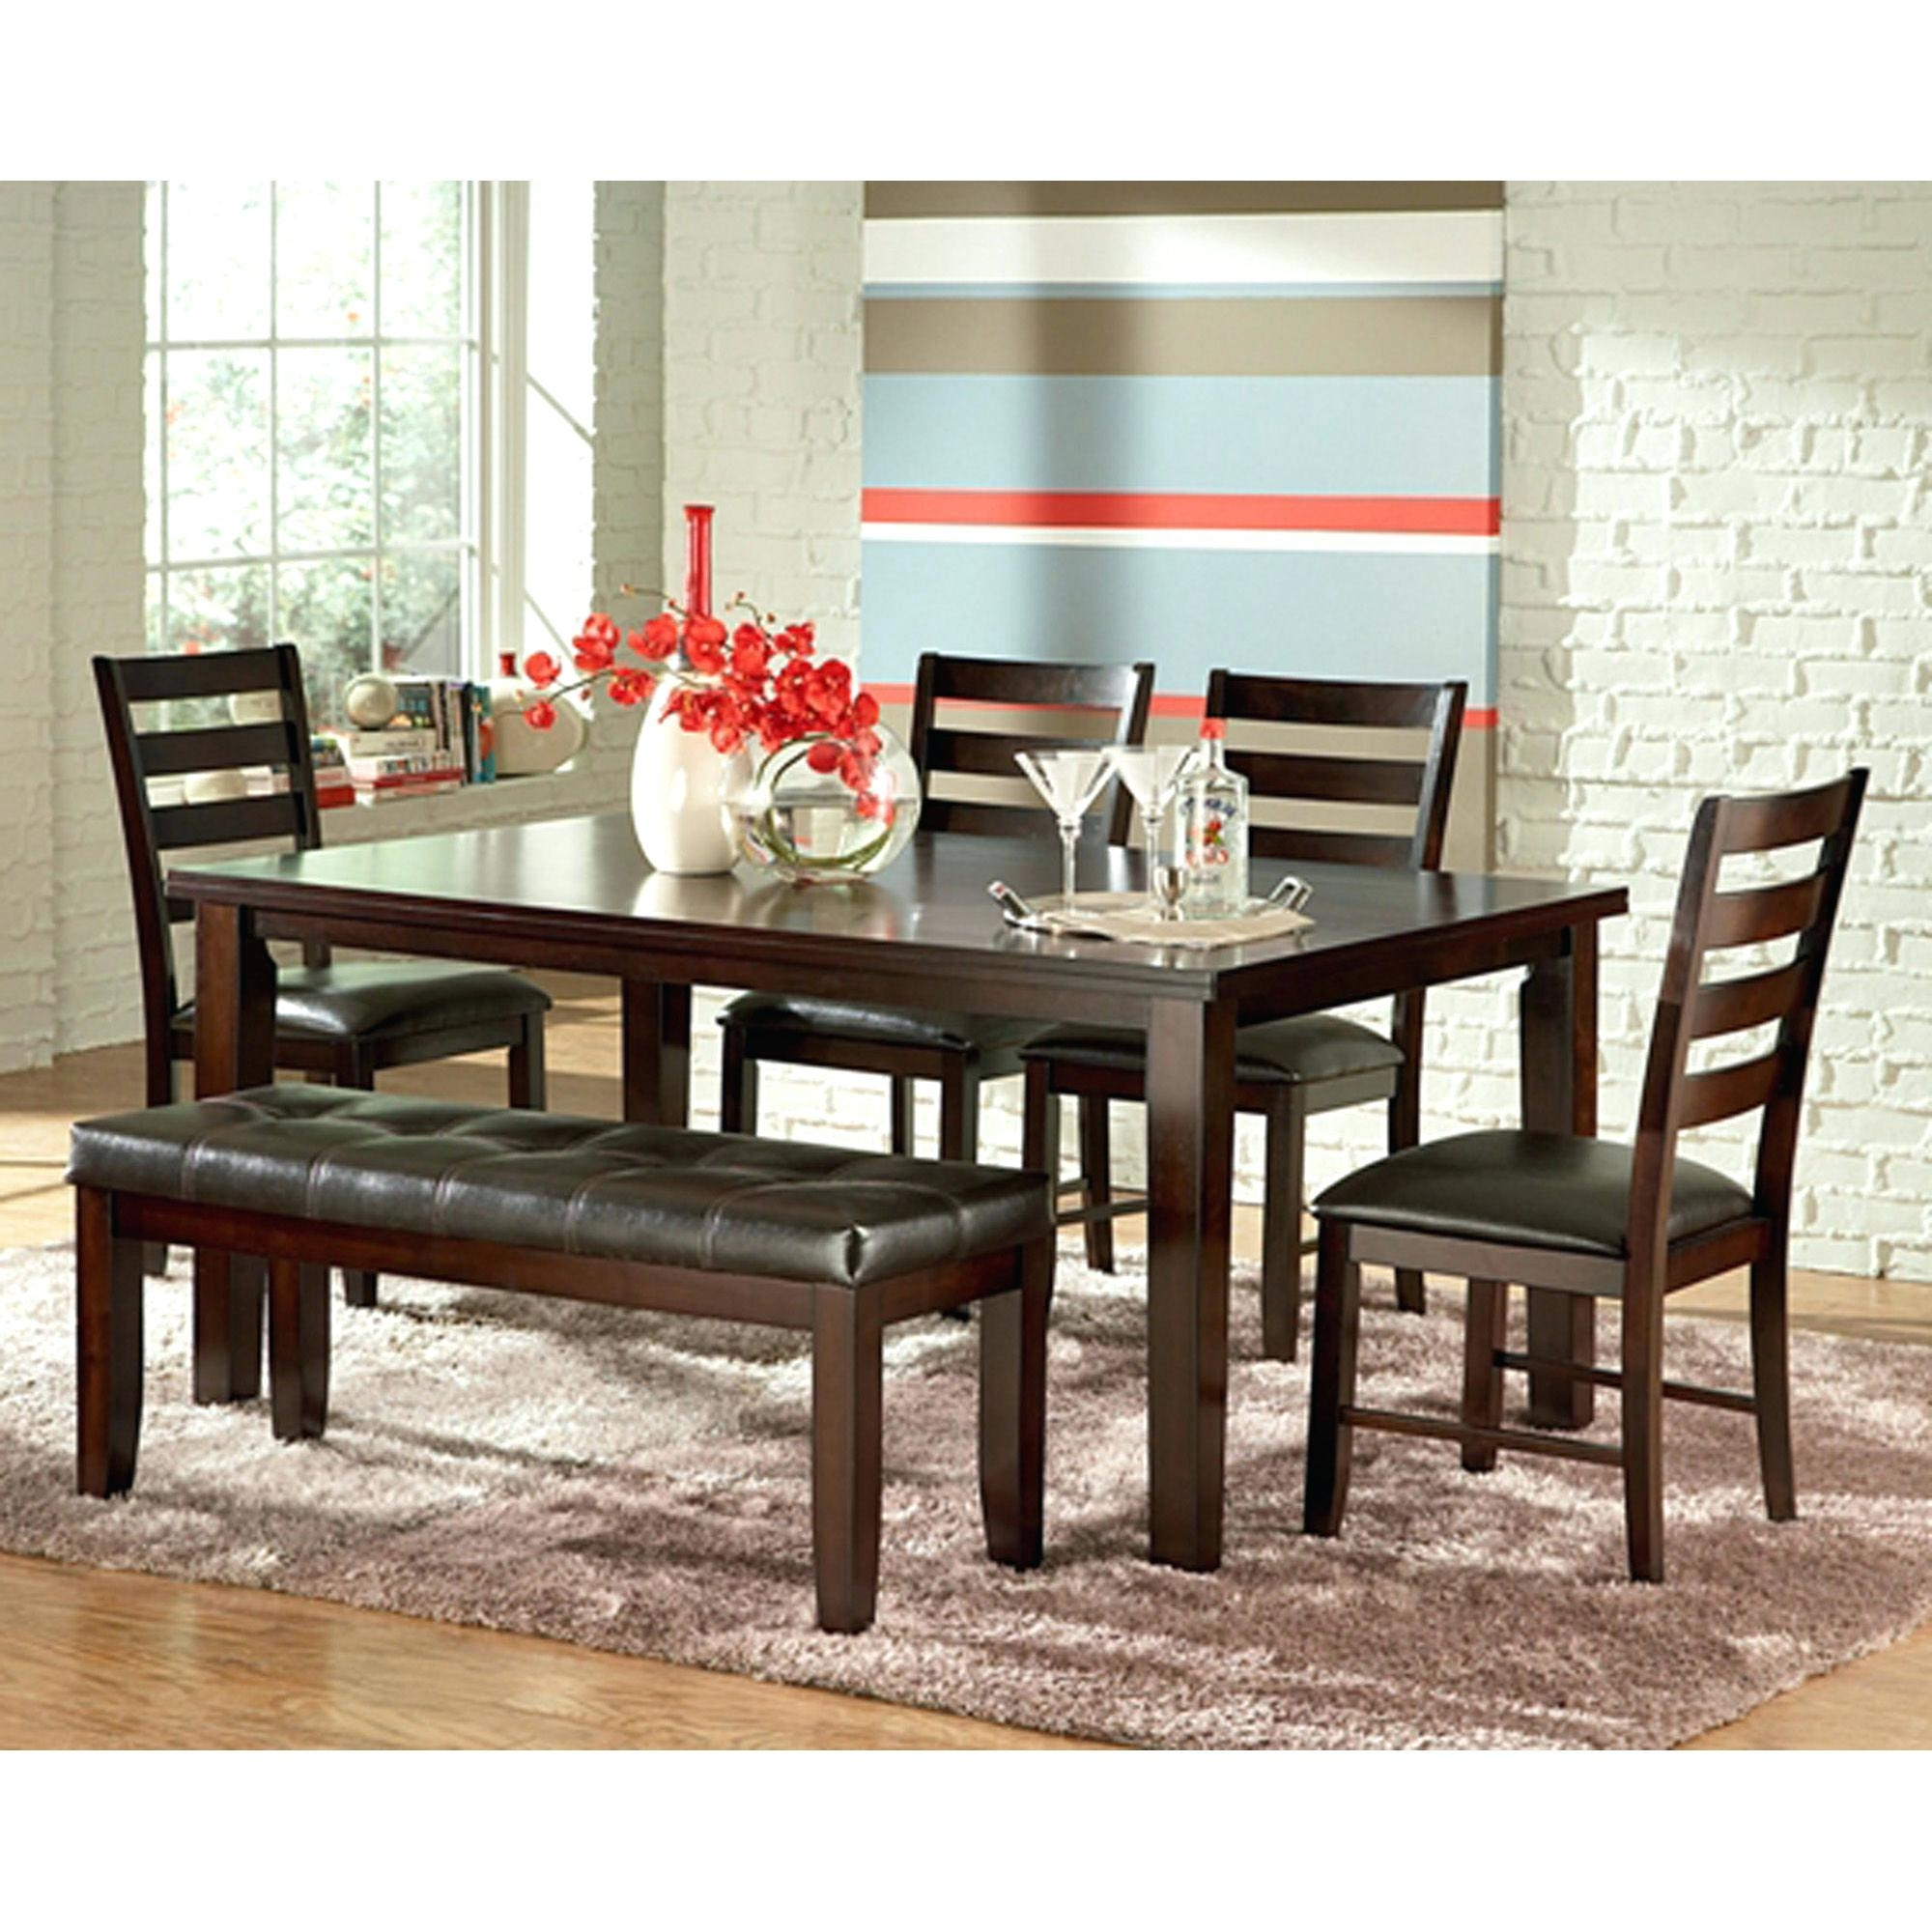 6 Piece Kitchen Table Mallard 6 Piece Extension Dining Set Inside Widely Used Mallard 6 Piece Extension Dining Sets (View 19 of 25)